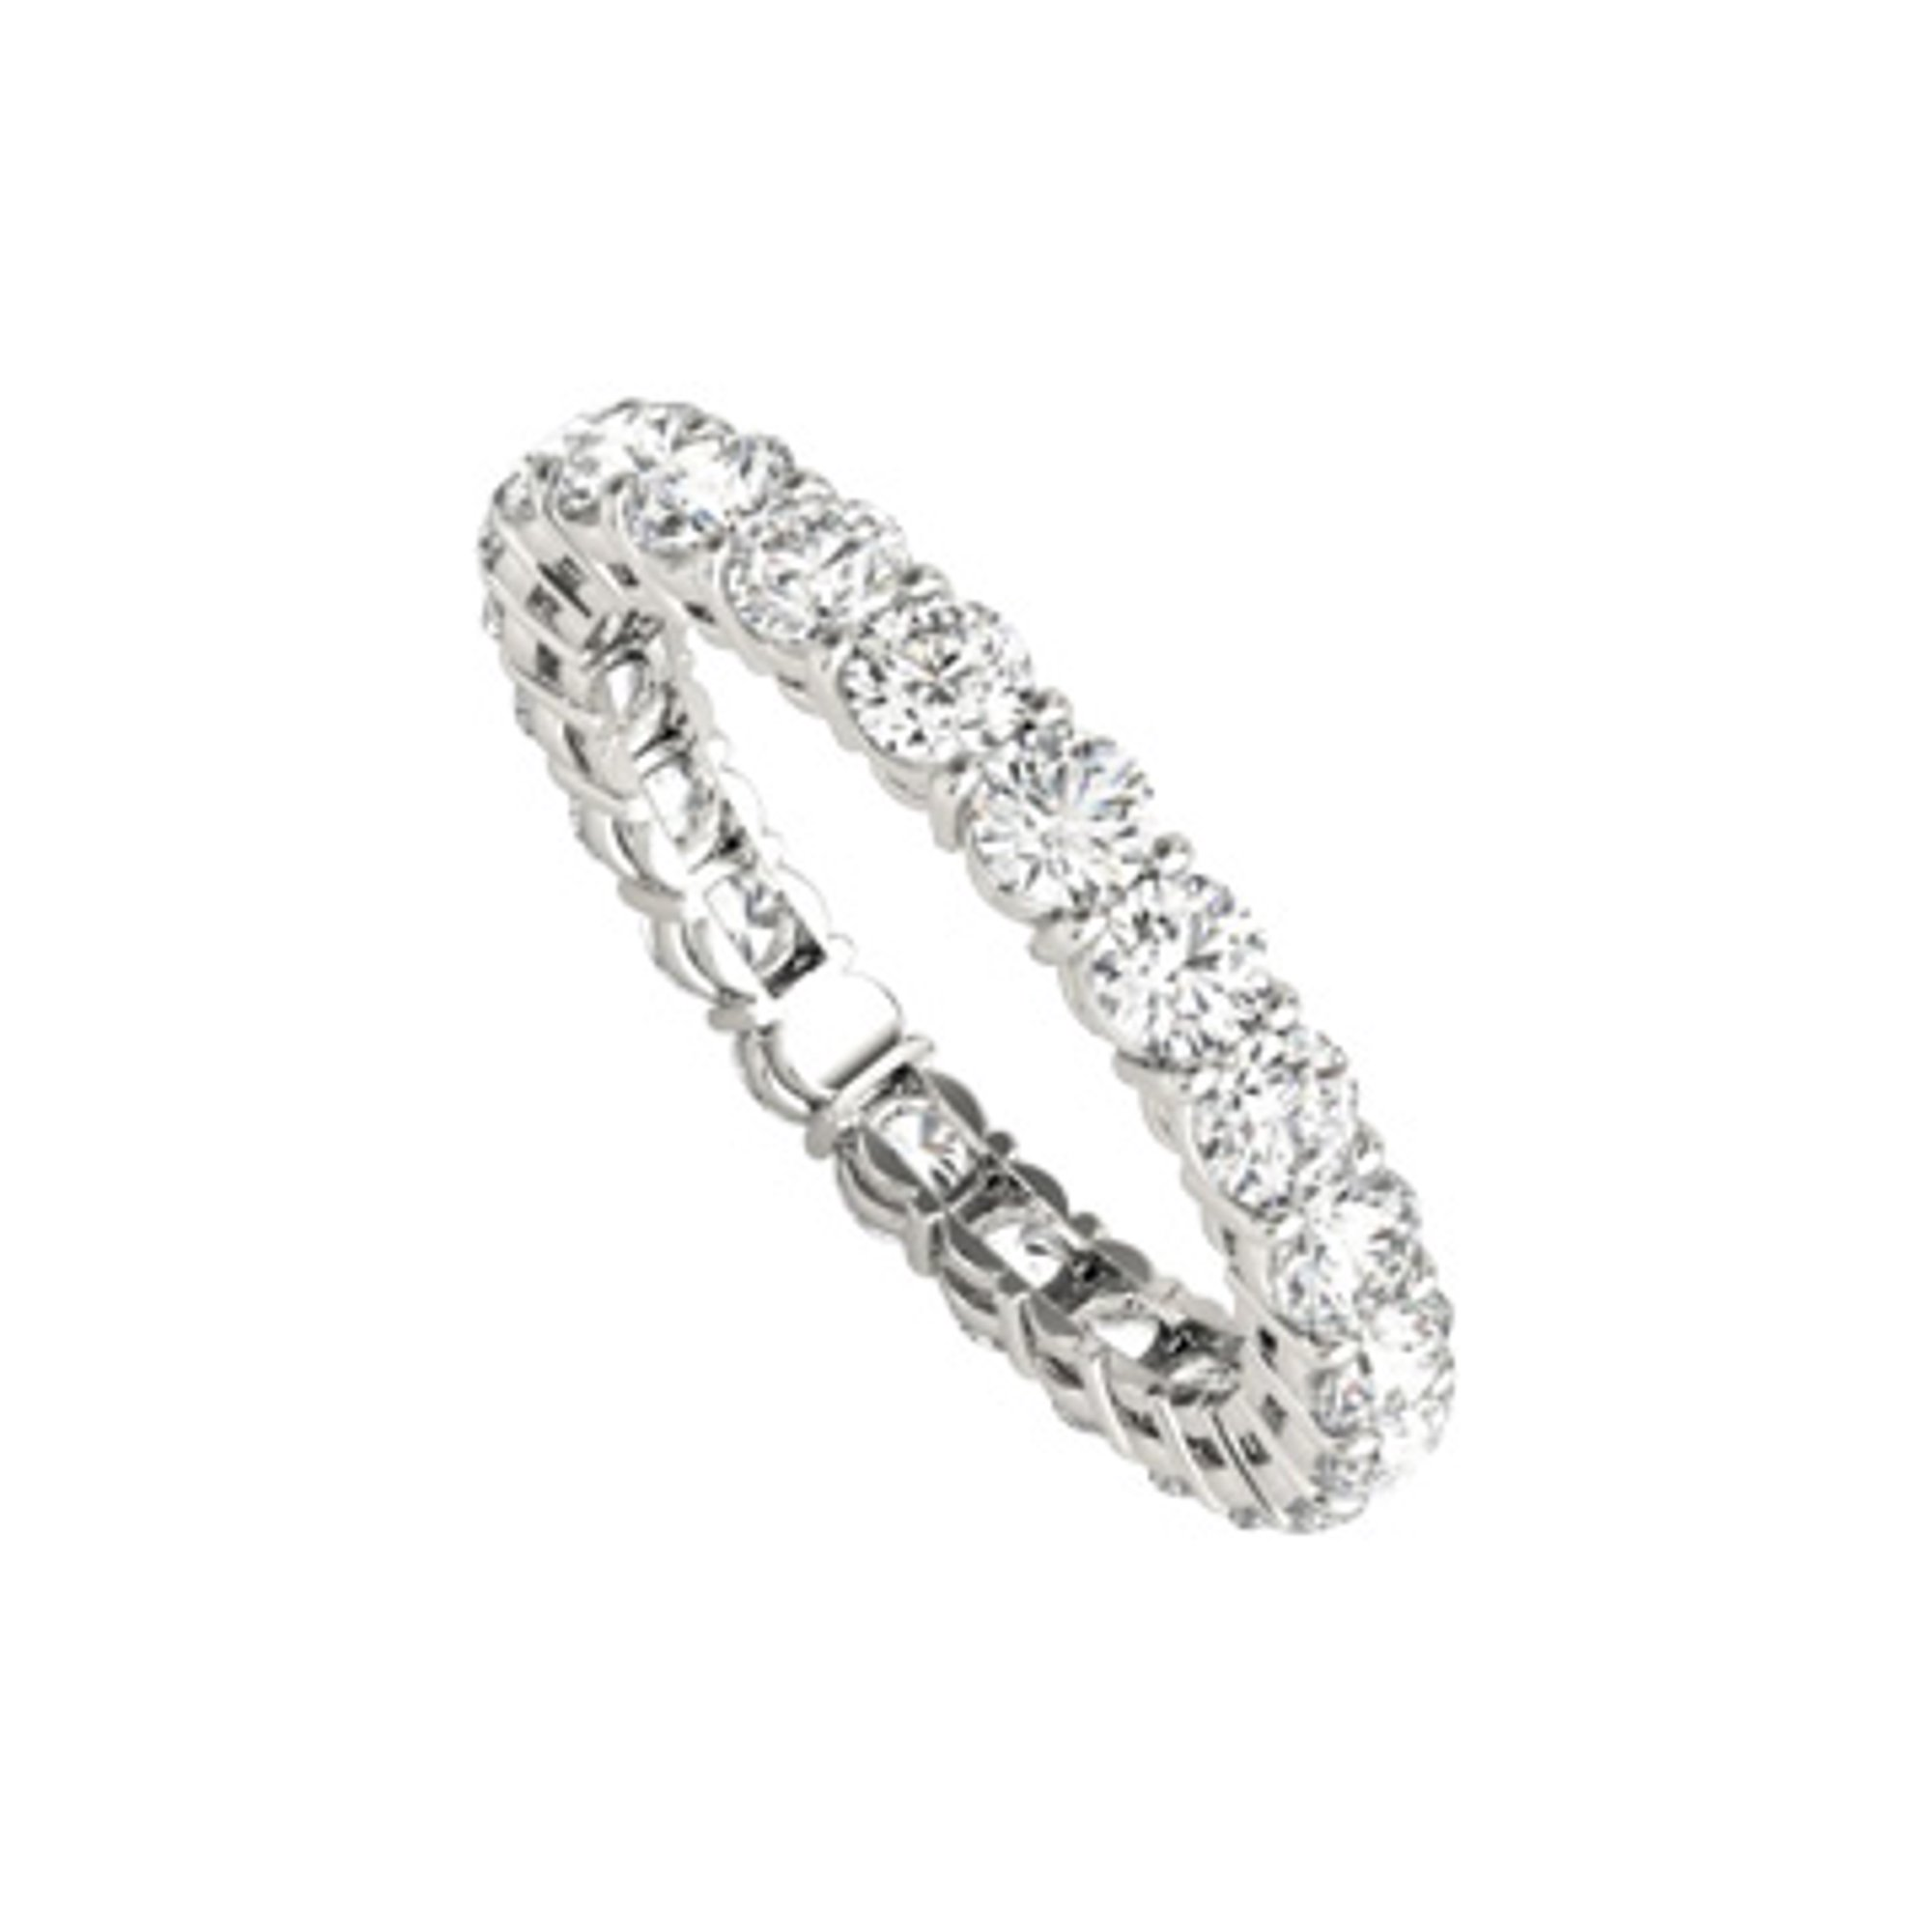 It is a photo of 44.44 Carat CZ Eternity Ring For Women in 44K White Gold